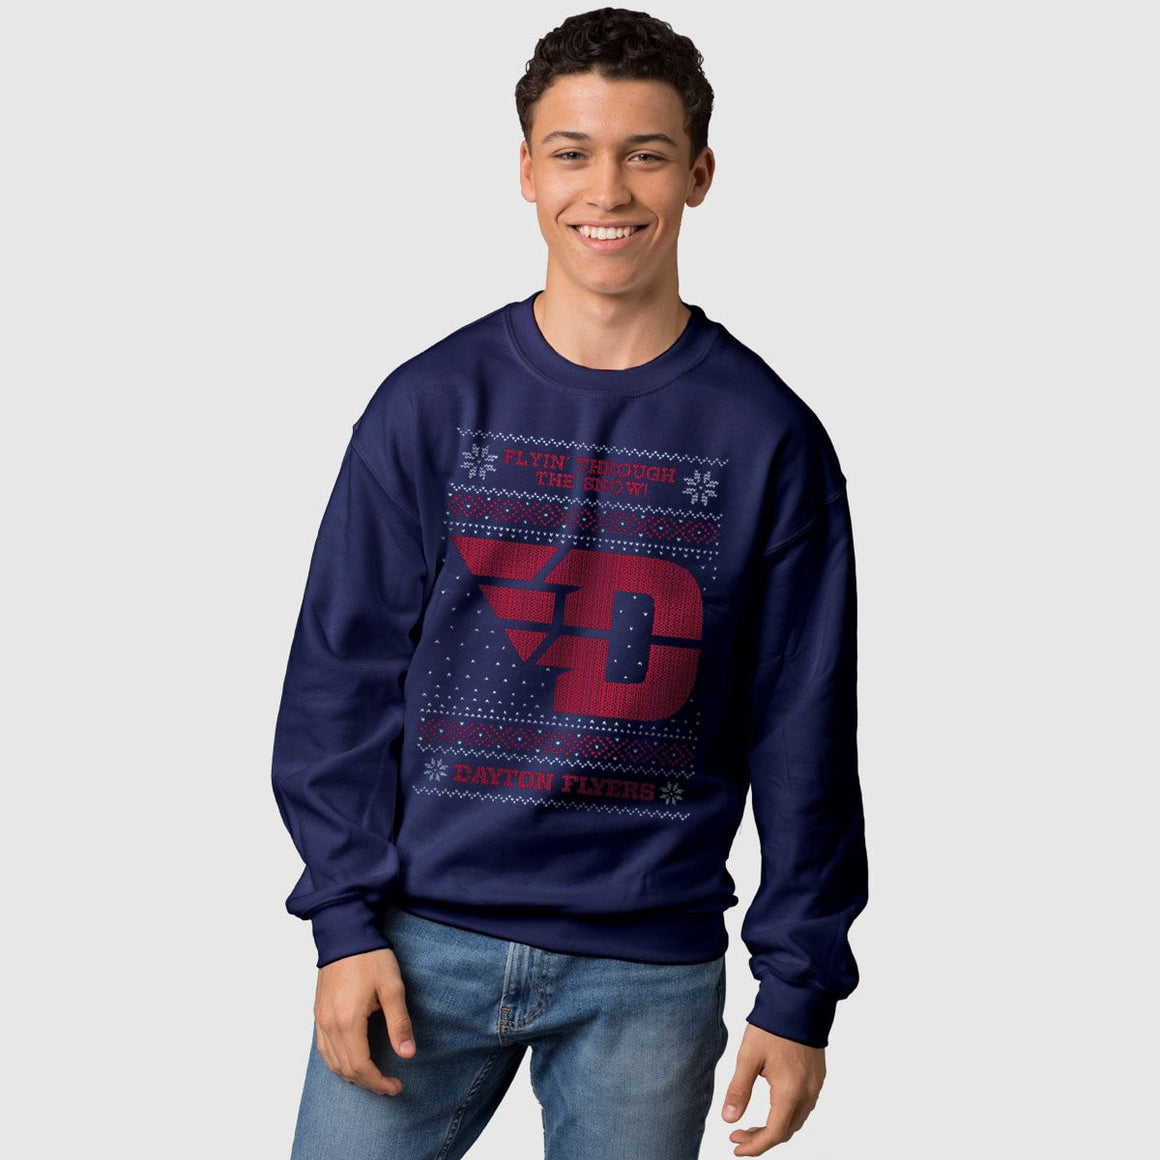 Dayton Flyers Ugly Christmas Sweatshirt